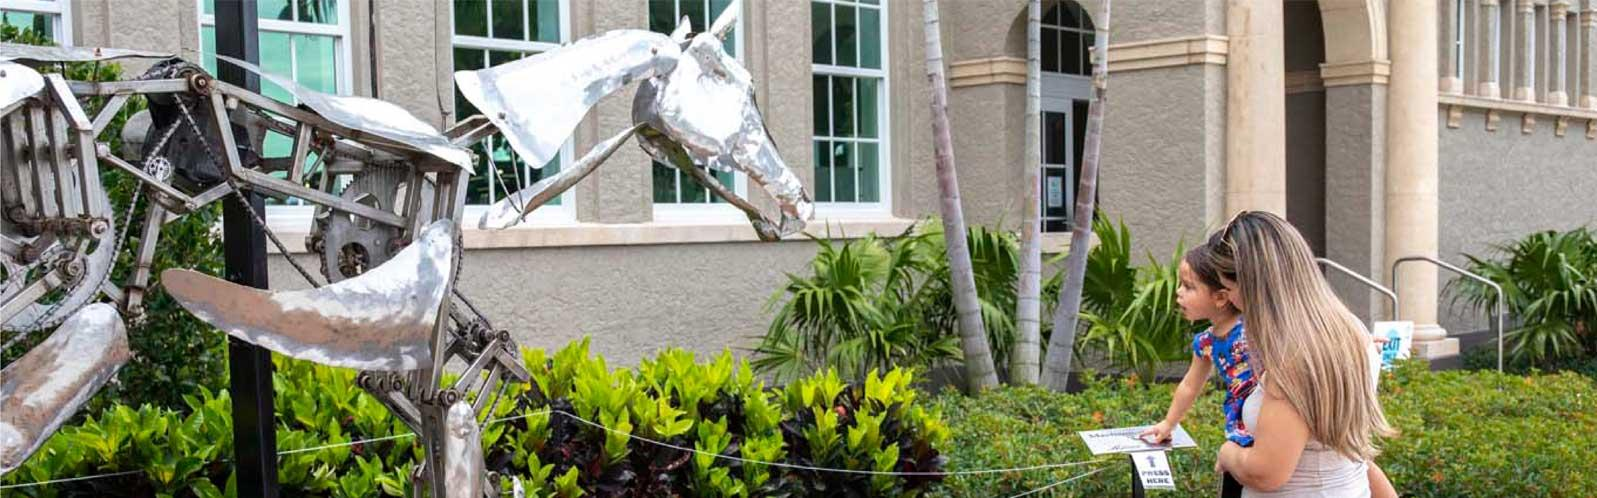 Two people next to kinetic art, horse sculpture.